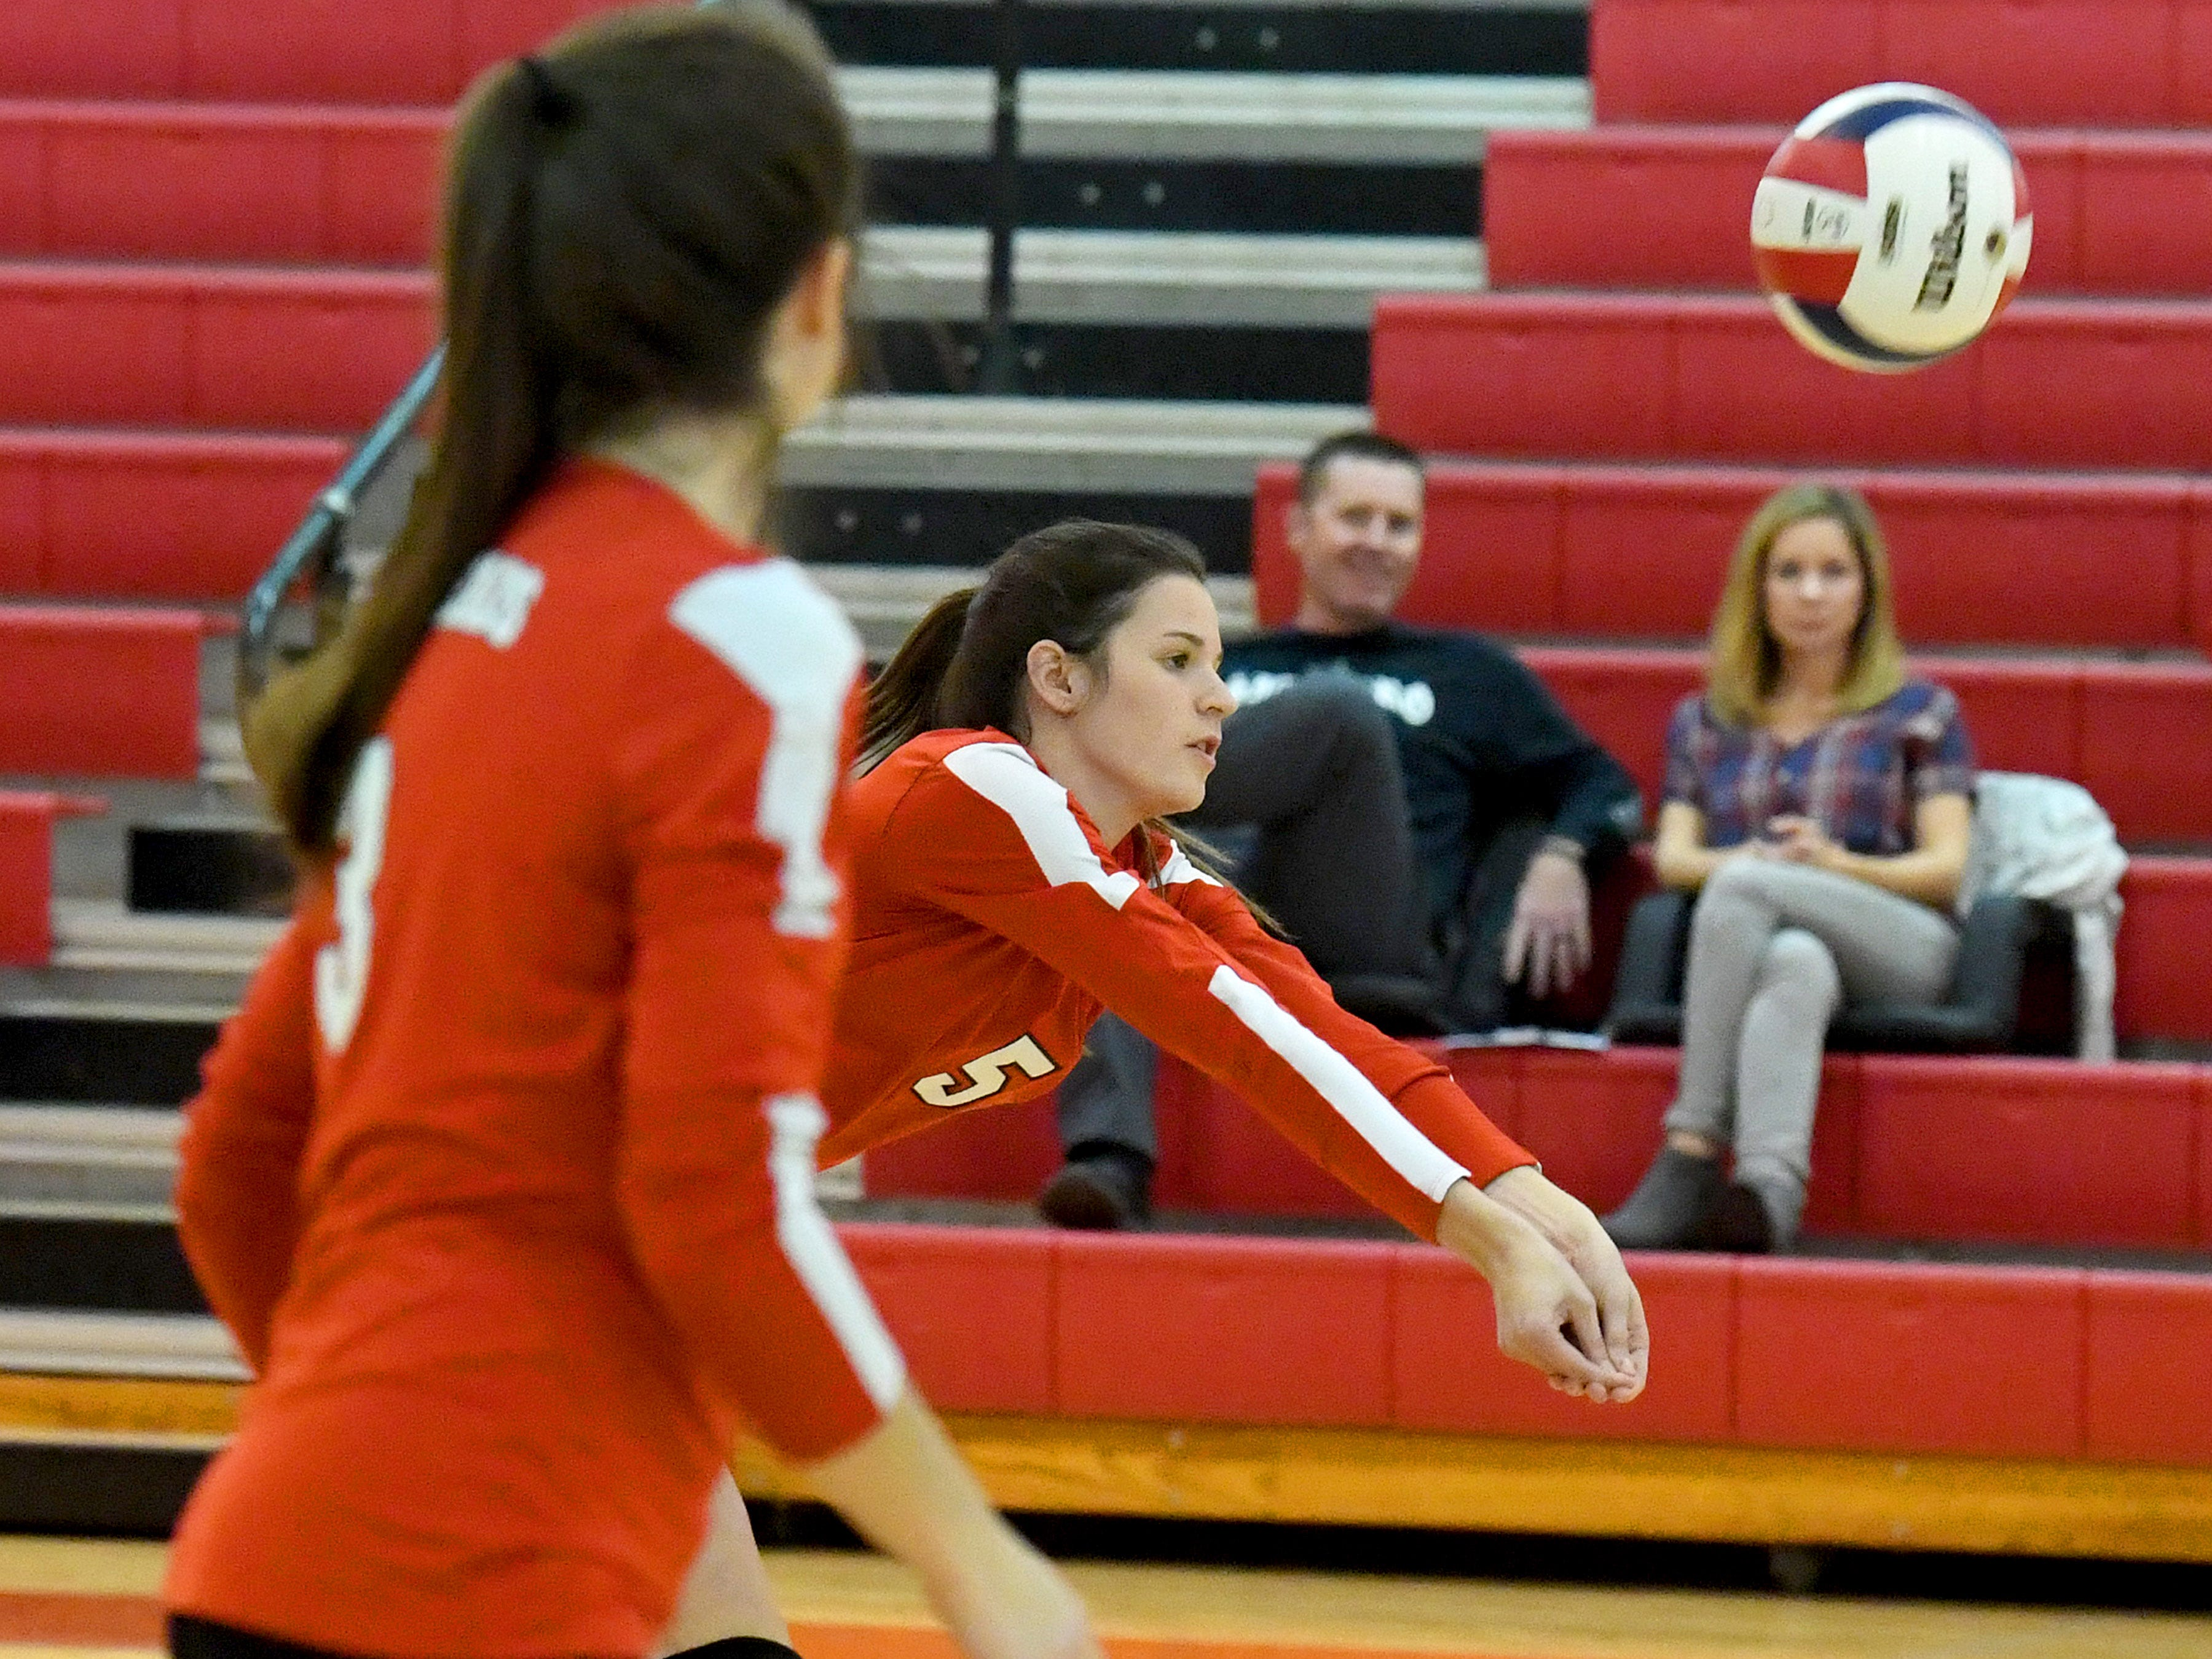 Riverheads' Abbey Eavers bumps the ball during a Region 1B quarterfinal match, played in Greenville on Thursday, Nov. 1, 2018.